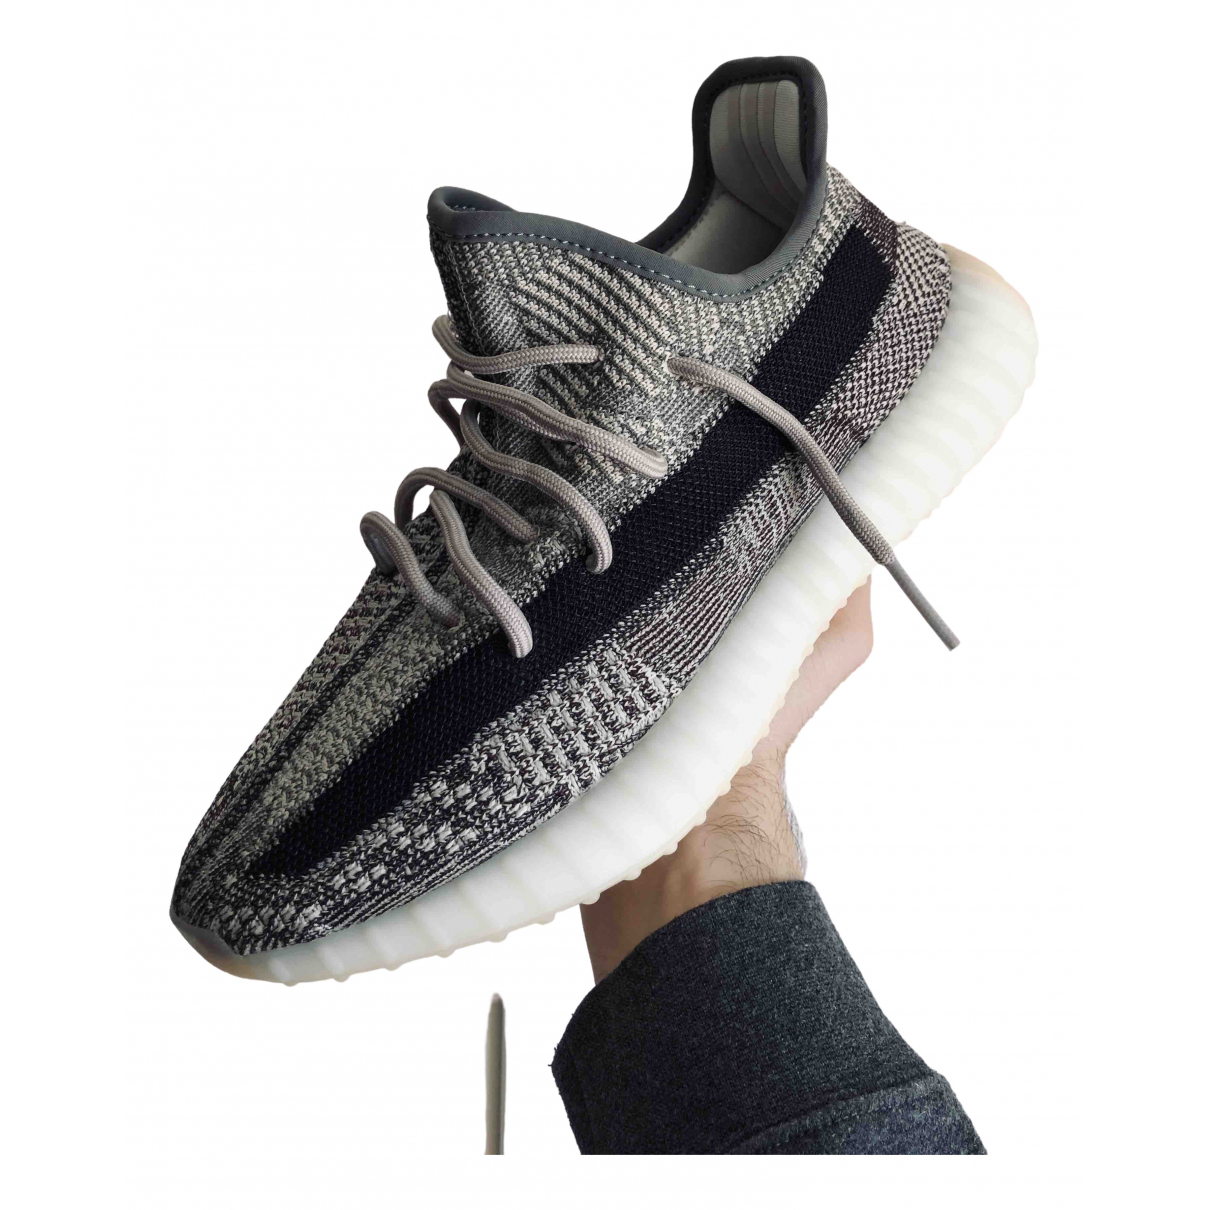 Yeezy X Adidas Boost 350 V2 Grey Cloth Trainers for Men 8.5 US